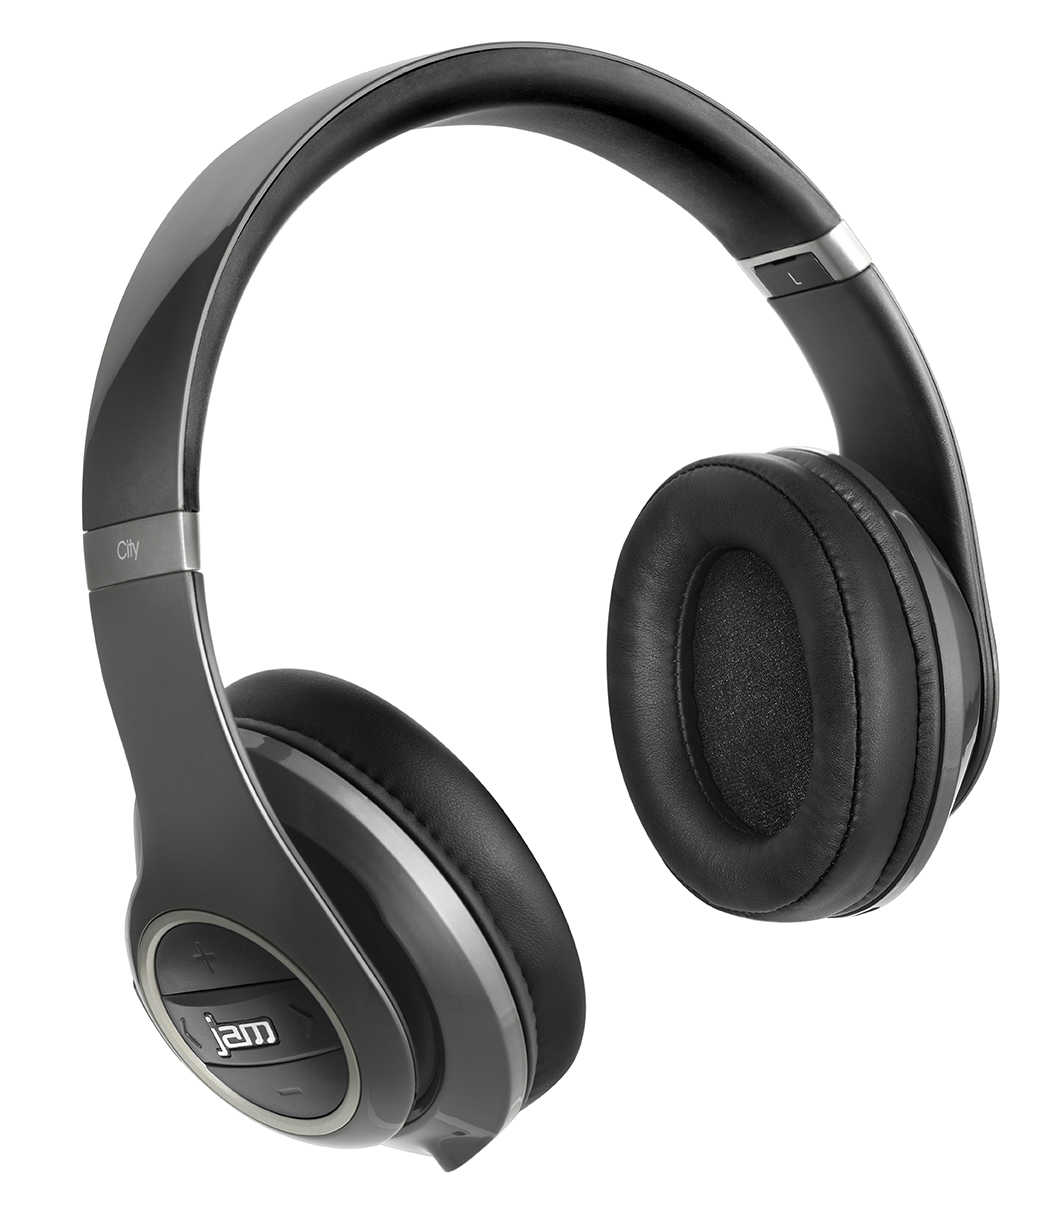 jam transit city over ear wireless bluetooth headphones noise cancelling grey ebay. Black Bedroom Furniture Sets. Home Design Ideas